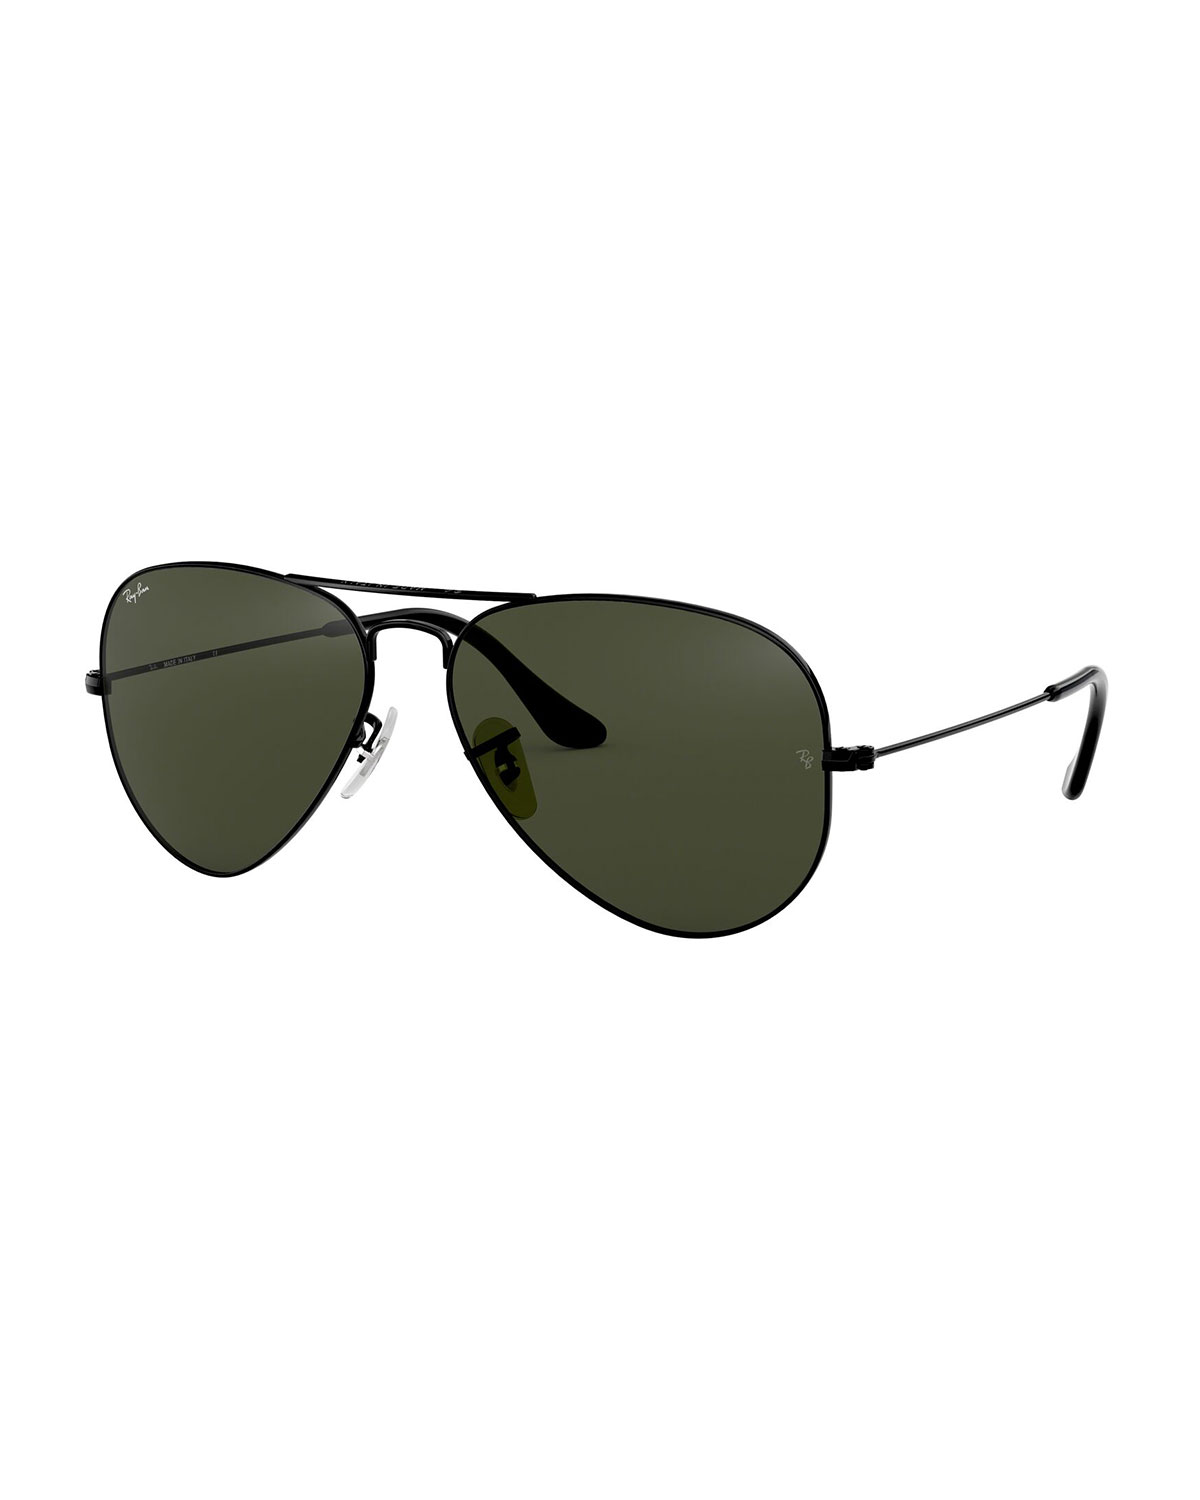 12ea3b4ca18 Ray-Ban Teardrop Aviator Sunglasses